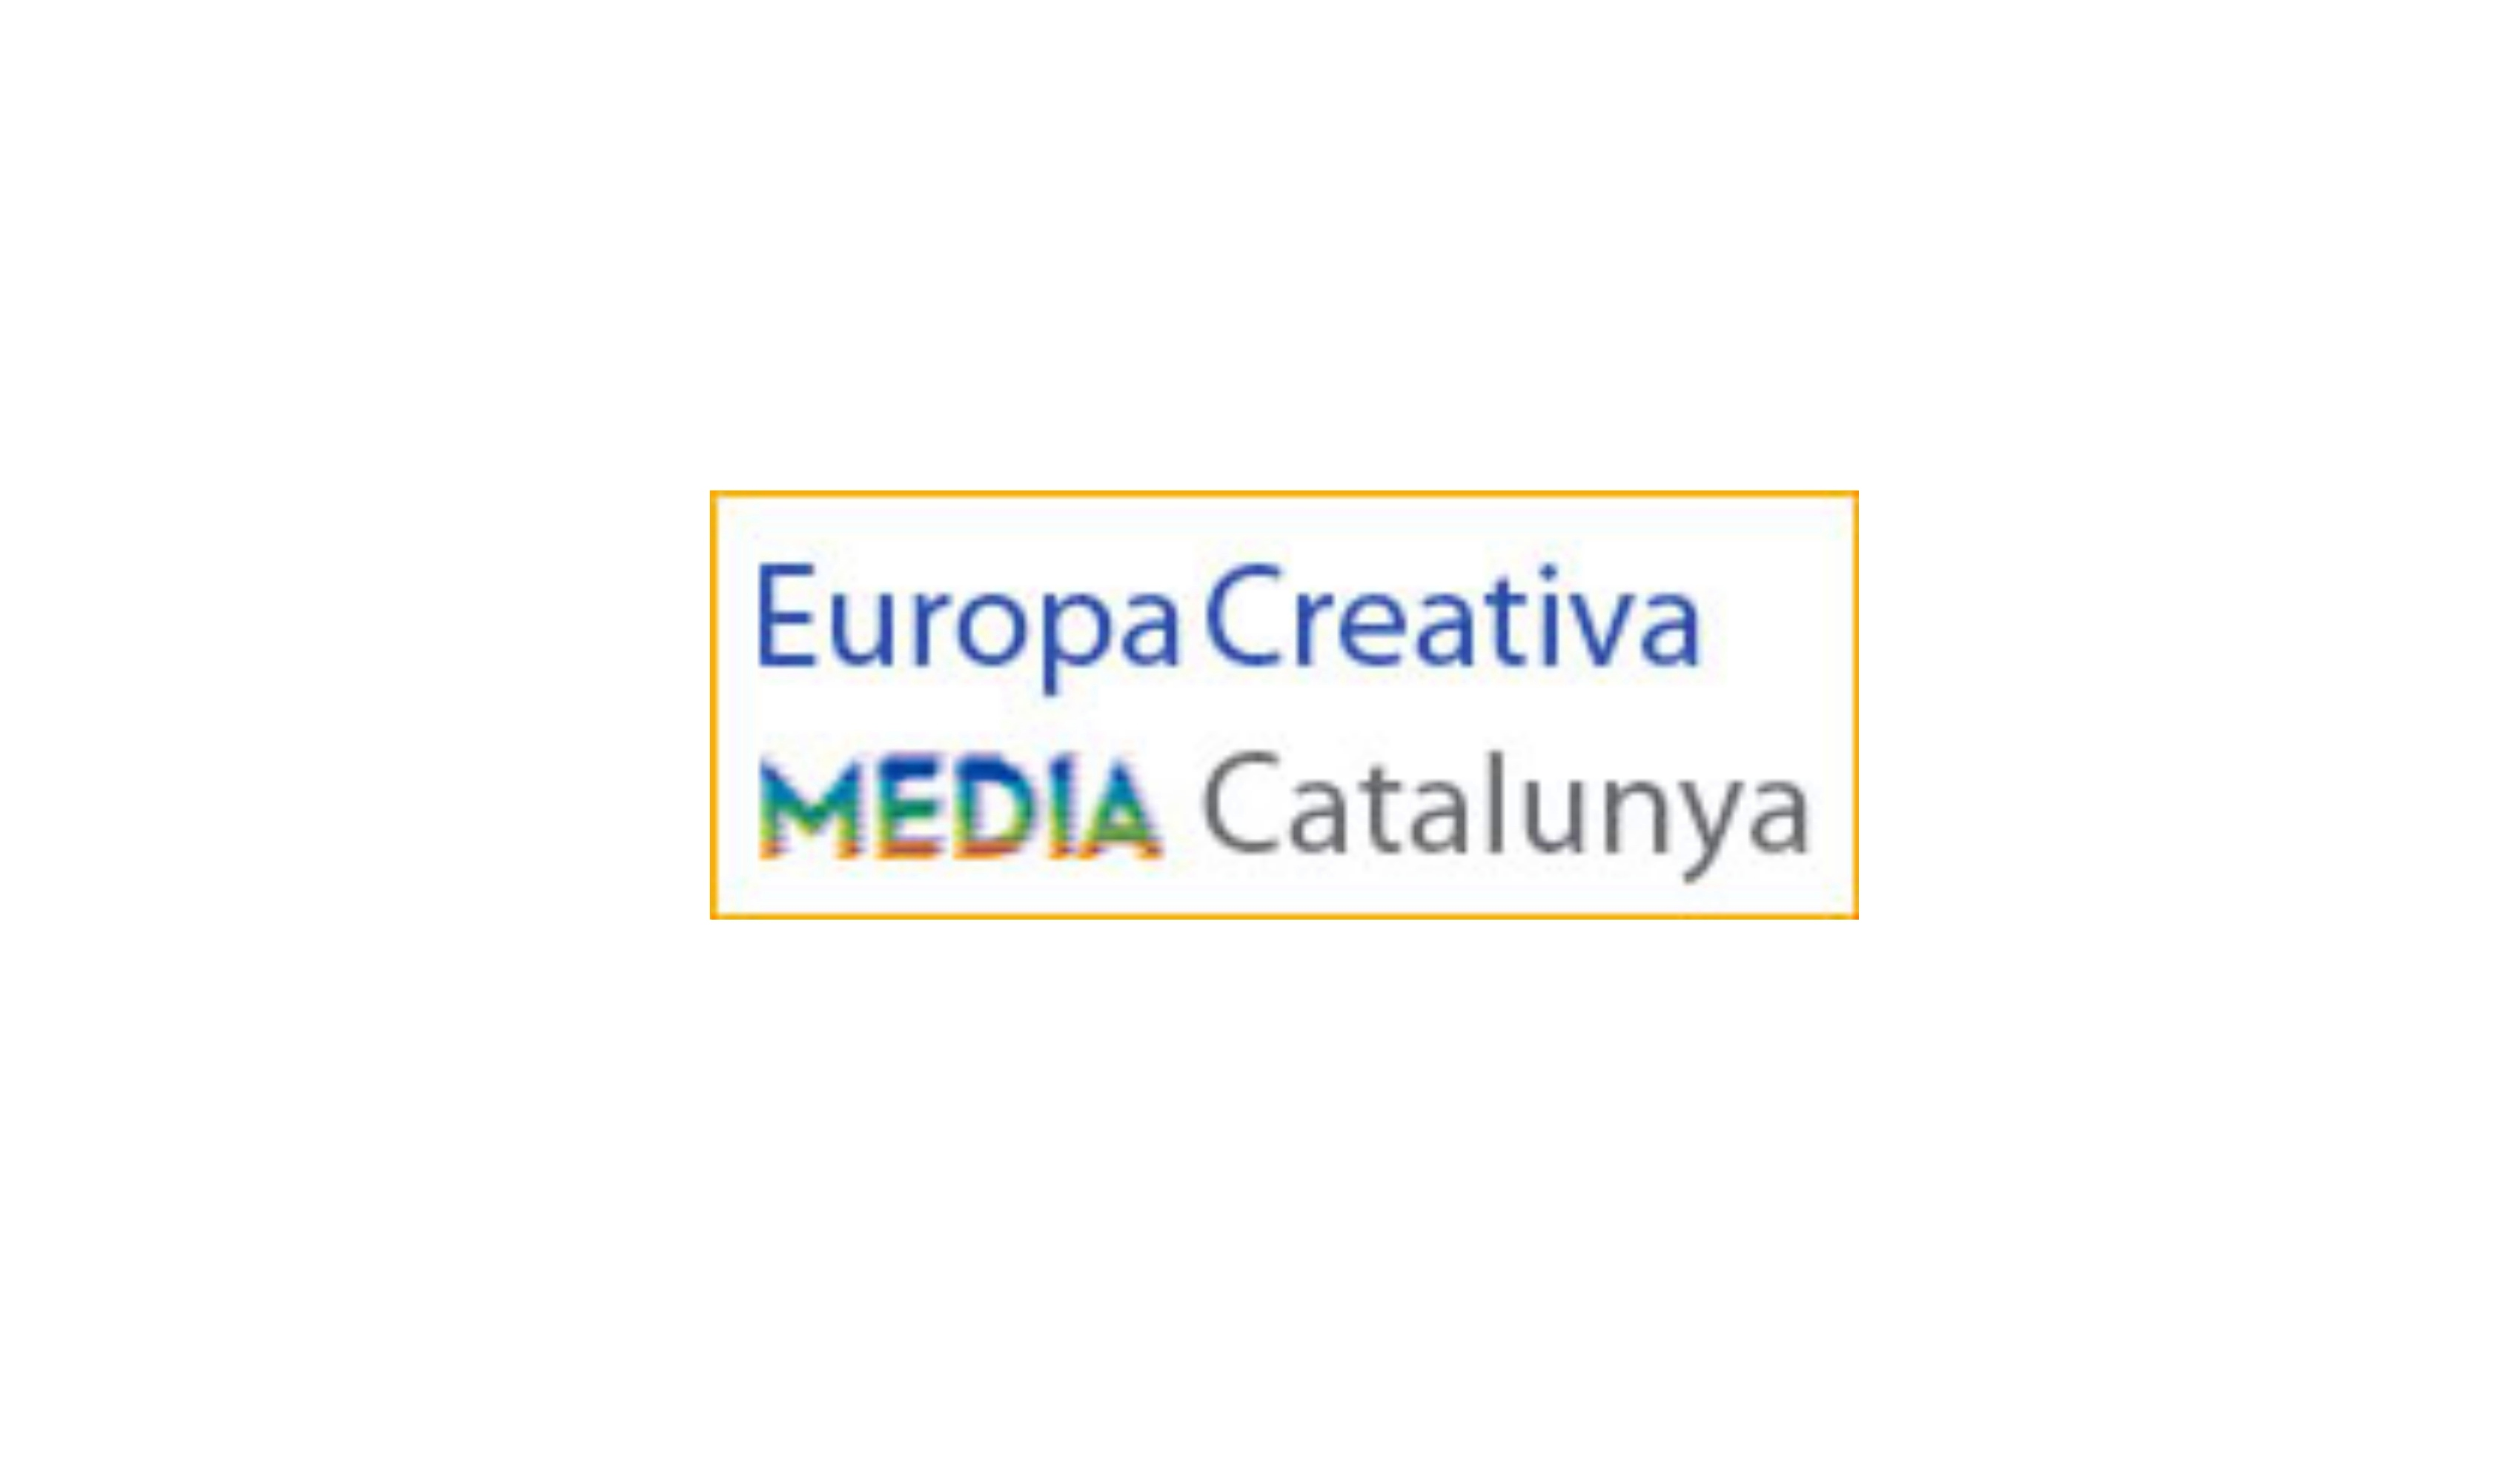 EUROPA CREATIVA MEDIA CATALUÑA